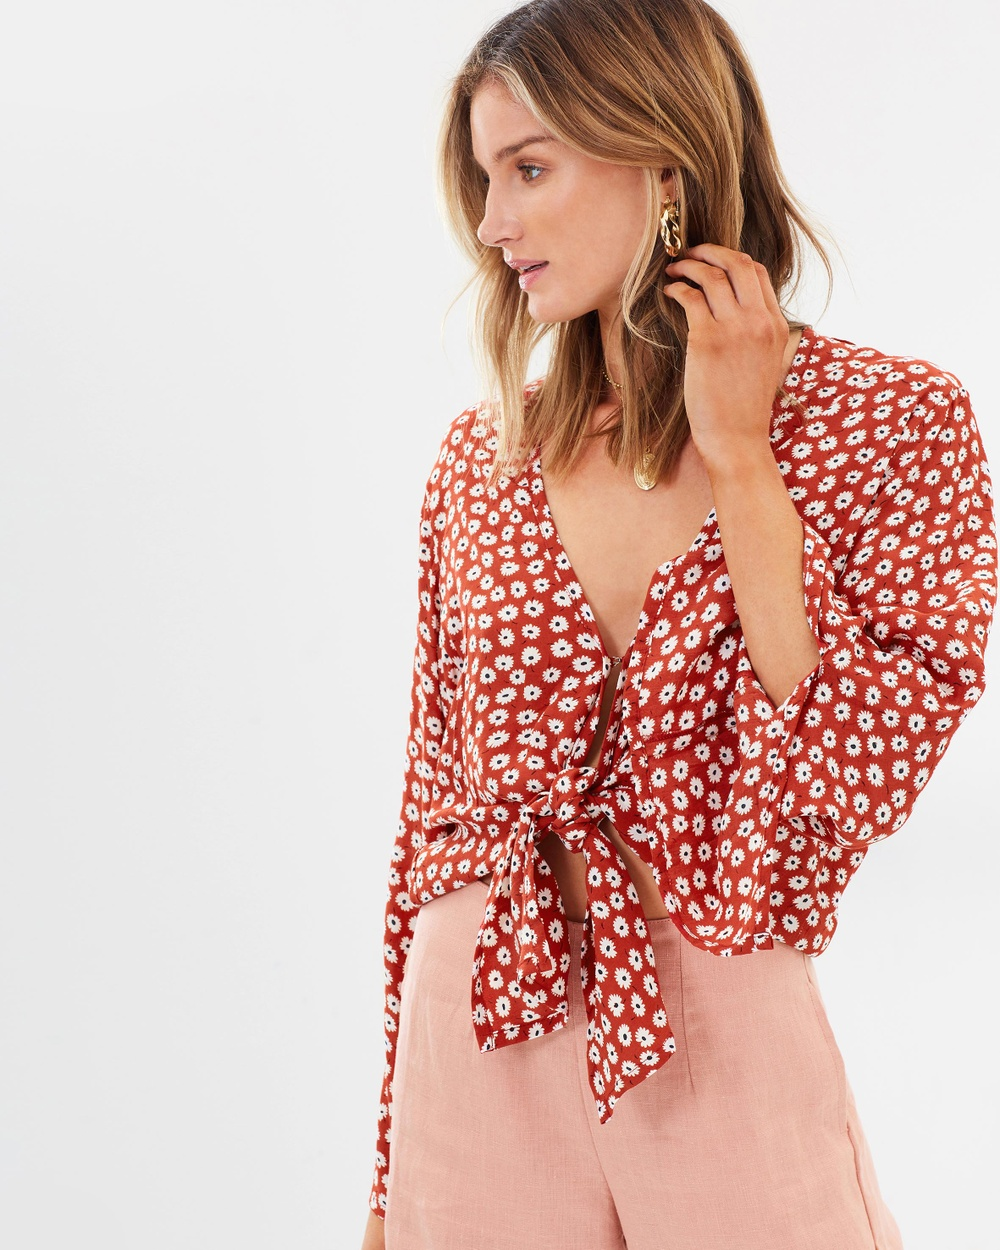 Faithfull Teguise Top Cropped tops Danica Floral Print Teguise Top